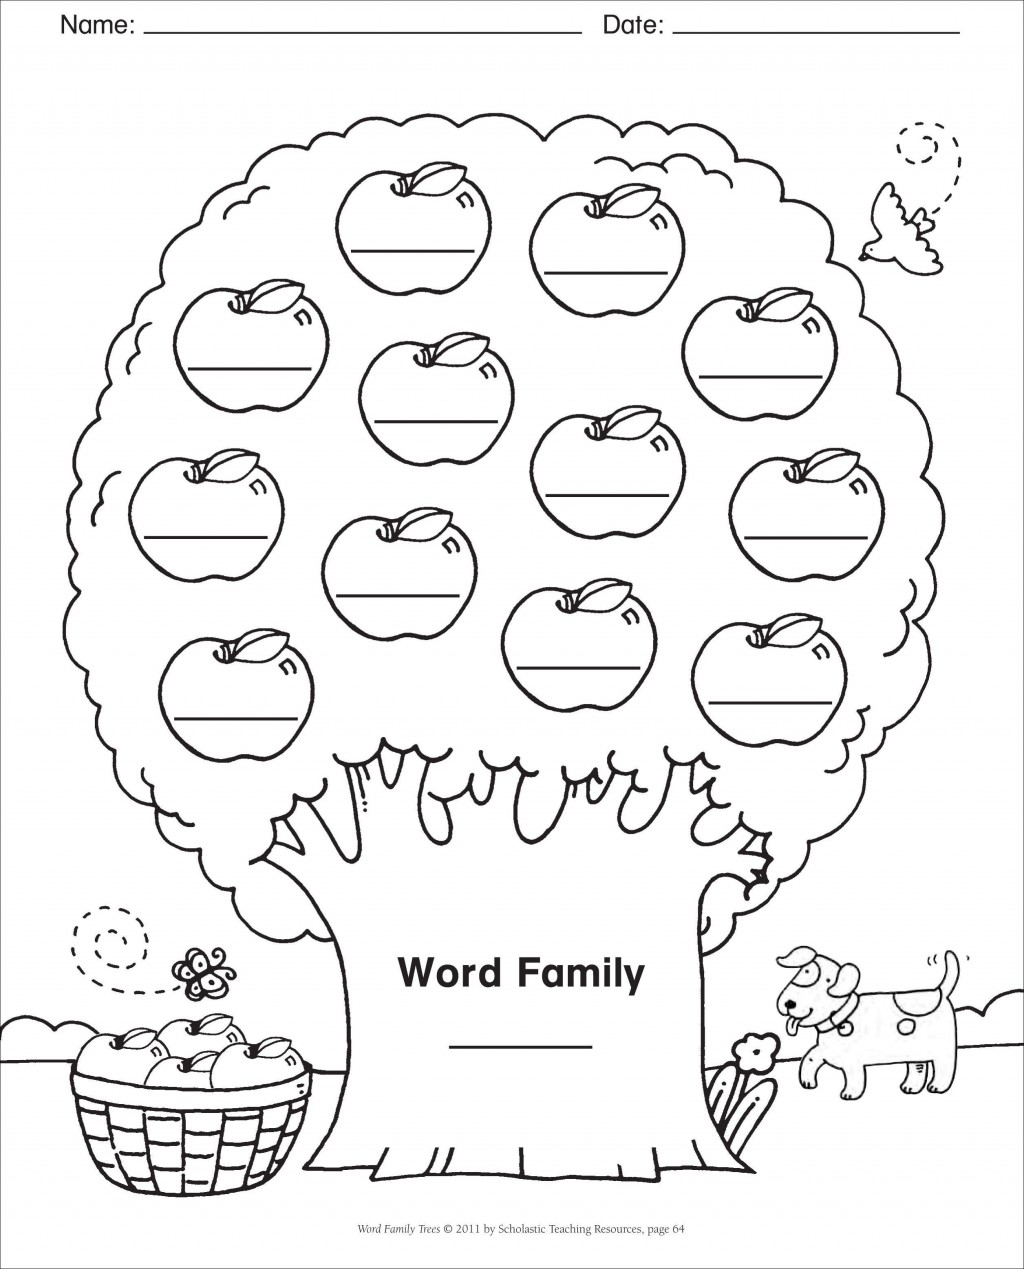 006 Stupendou Family Tree Book Template Word Highest Quality  HistoryLarge